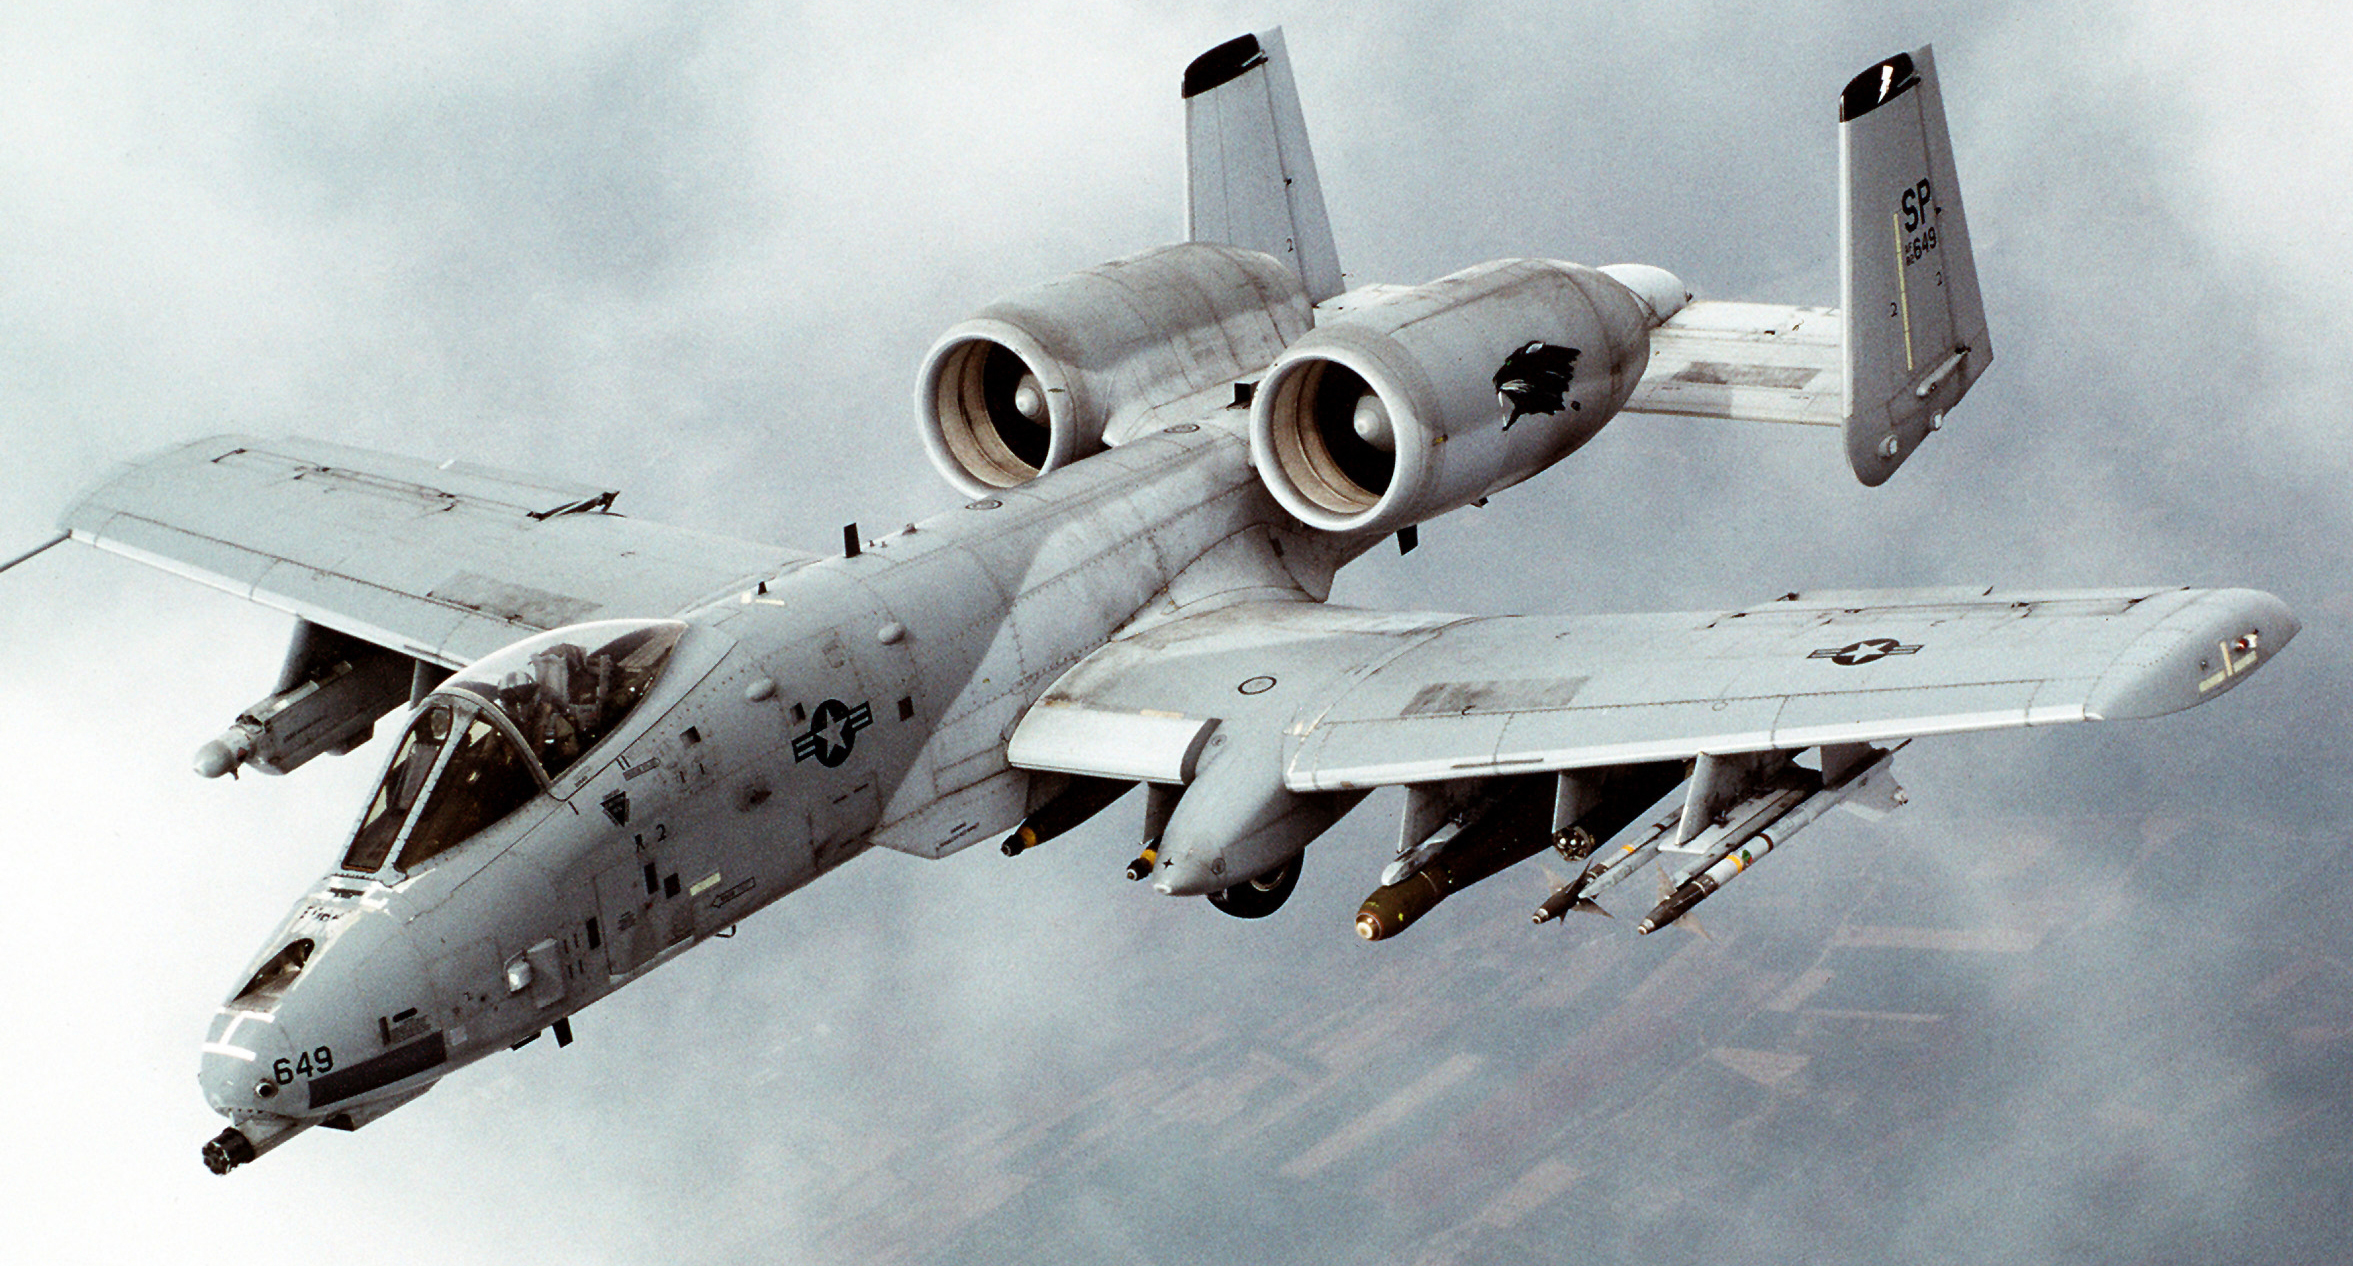 Fairchild A-10 Thunderbolt II Source:  commons.wikimedia.org